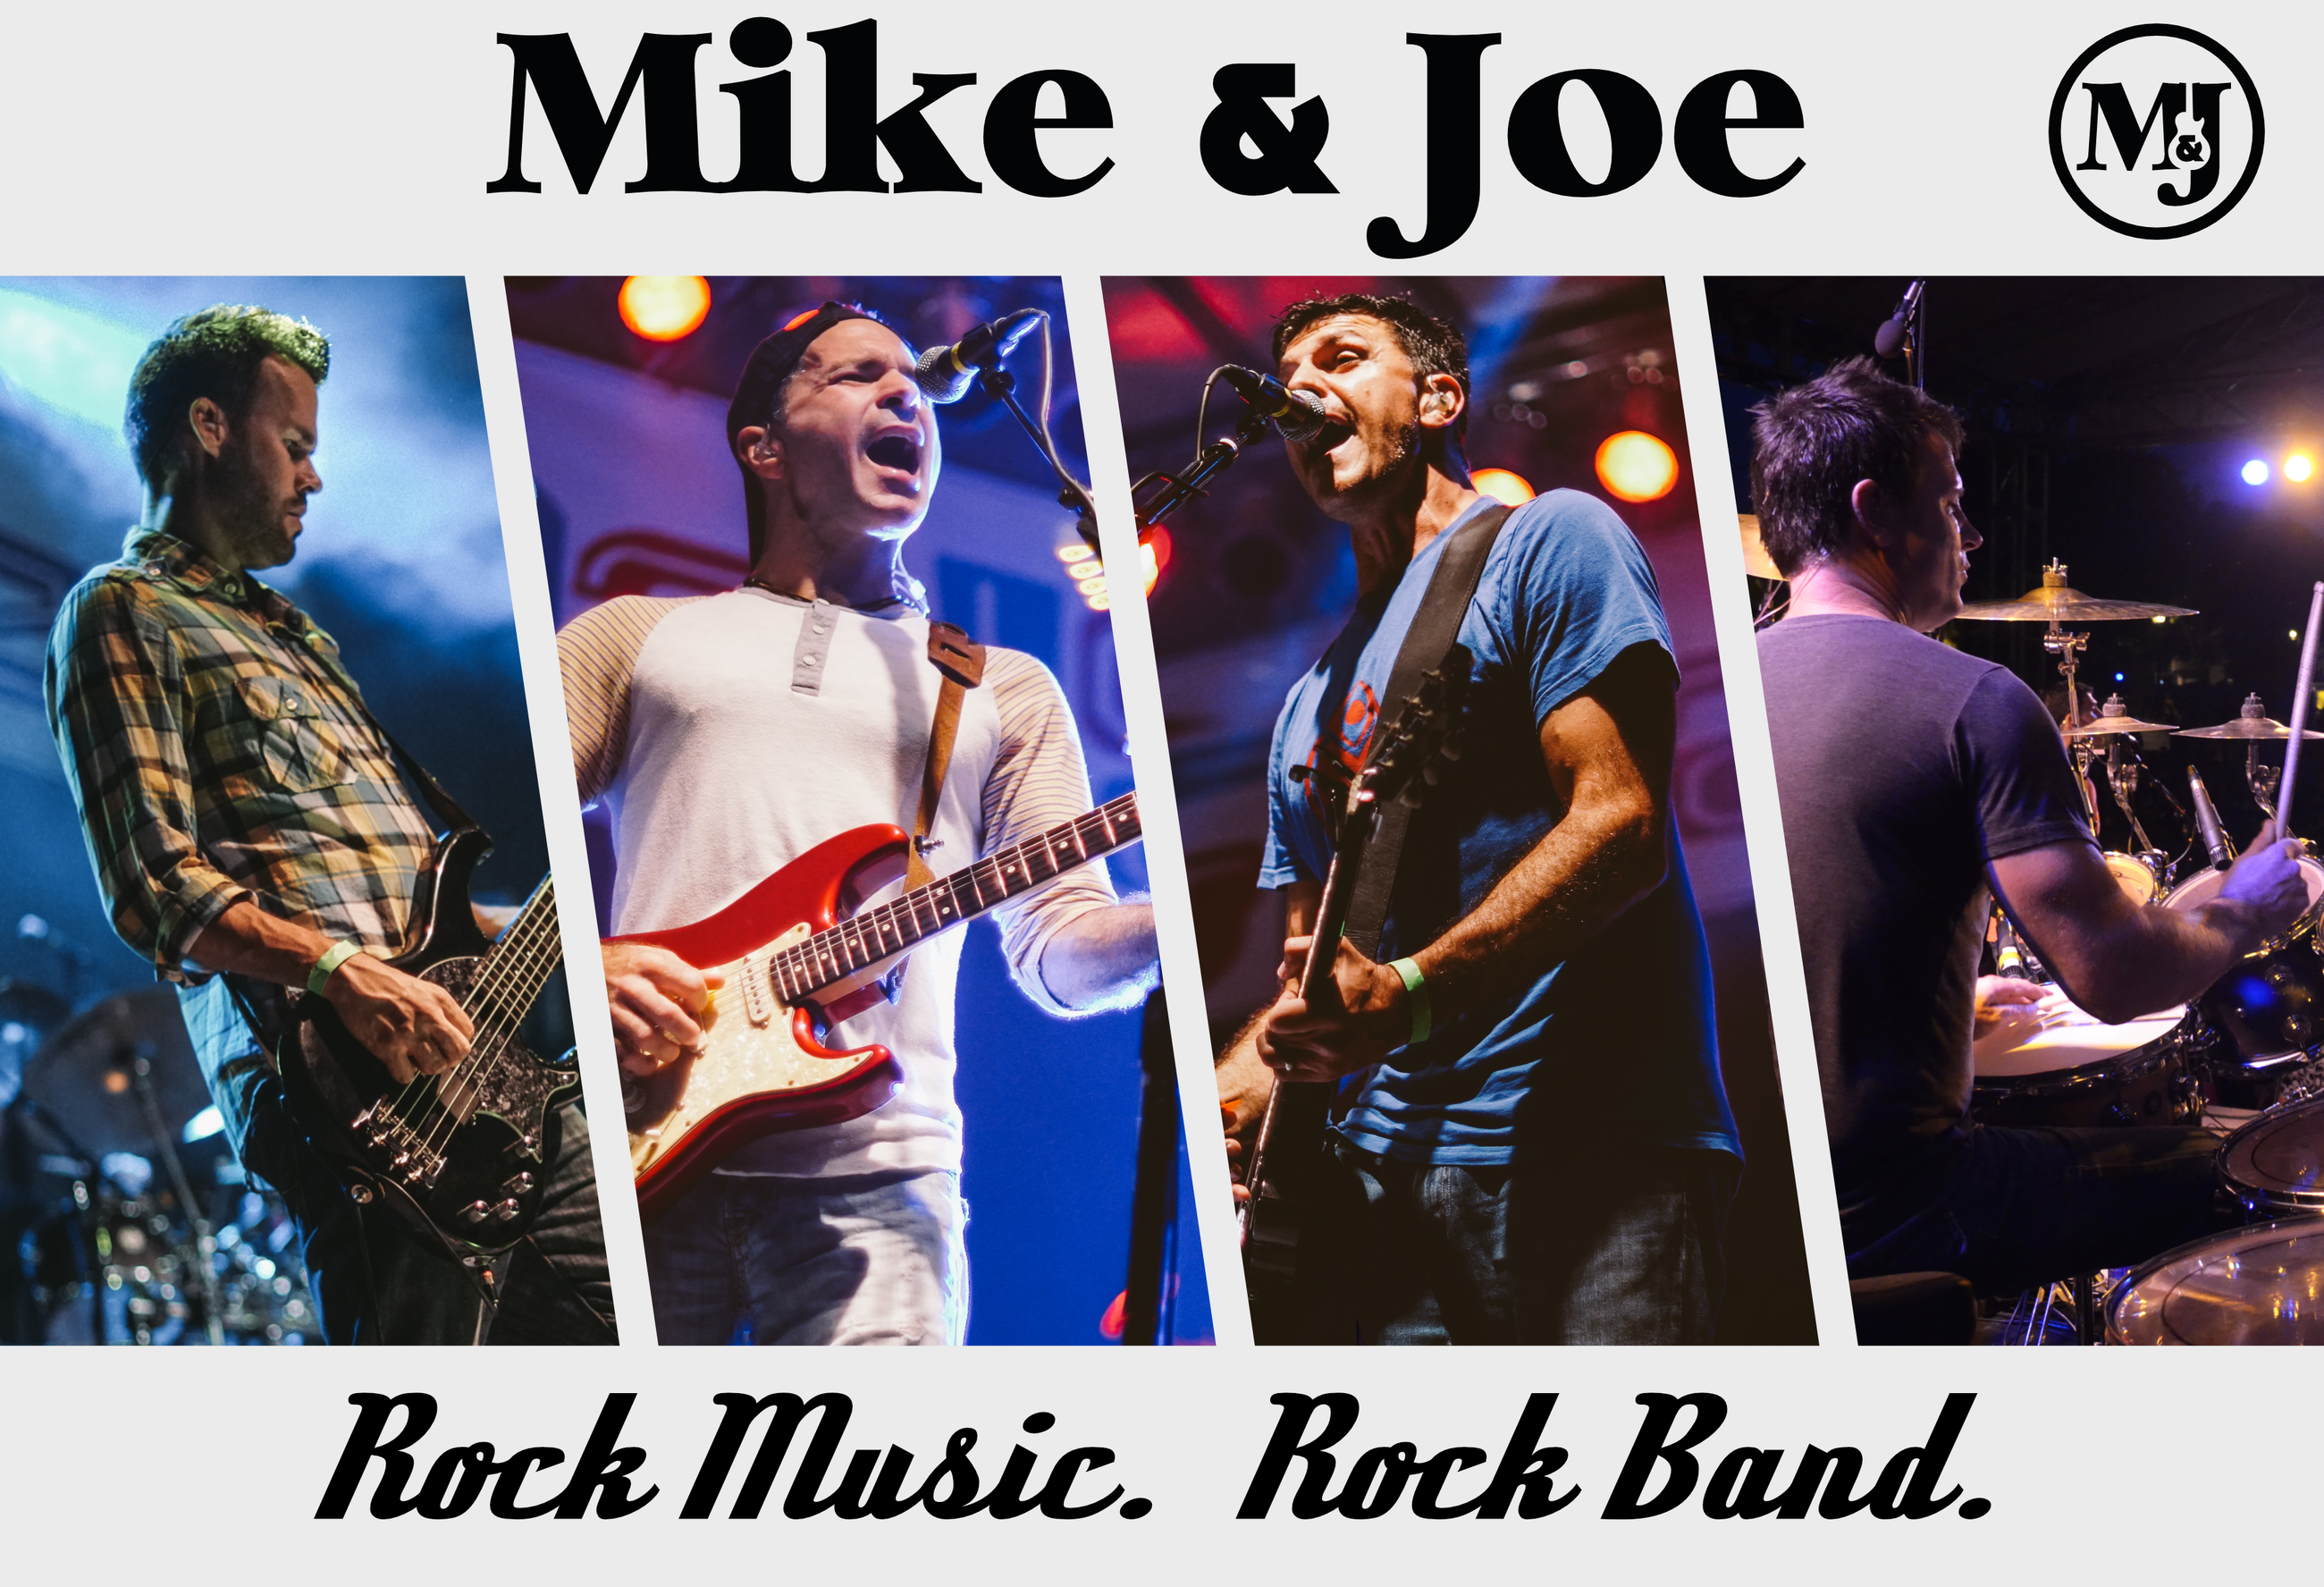 3 Mike and Joe Promo slanted lines w rock slogan